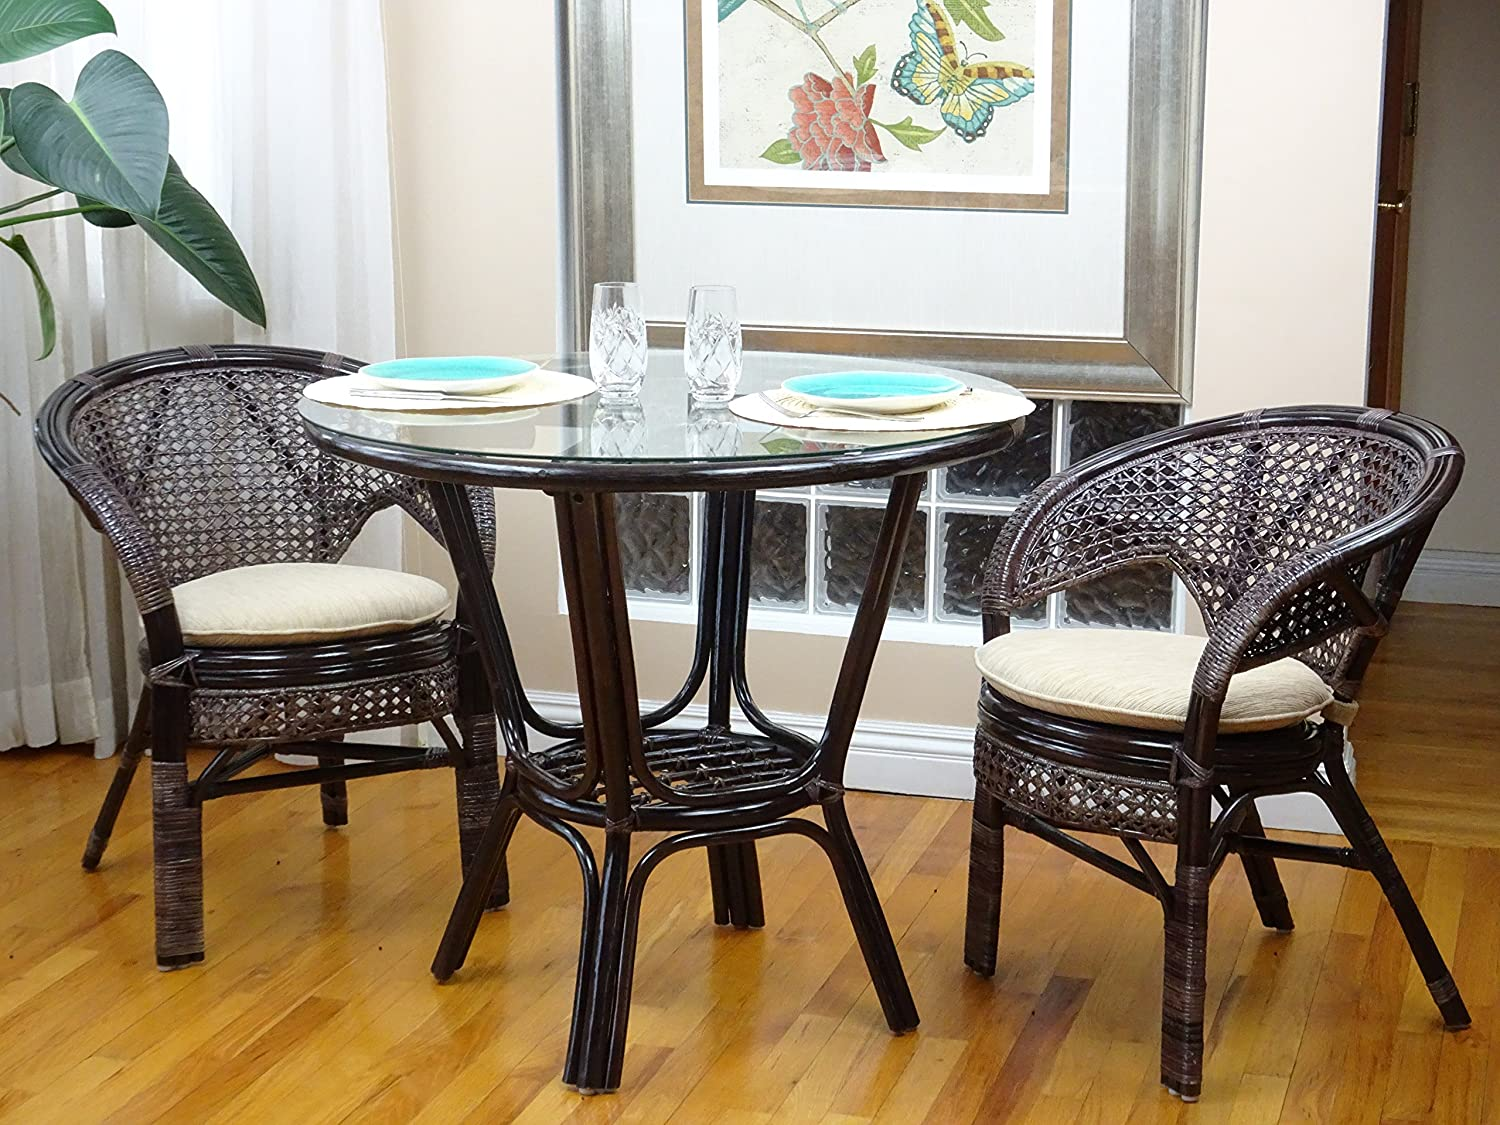 Amazon 3 Pcs Pelangi Rattan Wicker Dining Set Round Table Glass Top 2 Arm Chairs Dark Brown Color Garden Outdoor